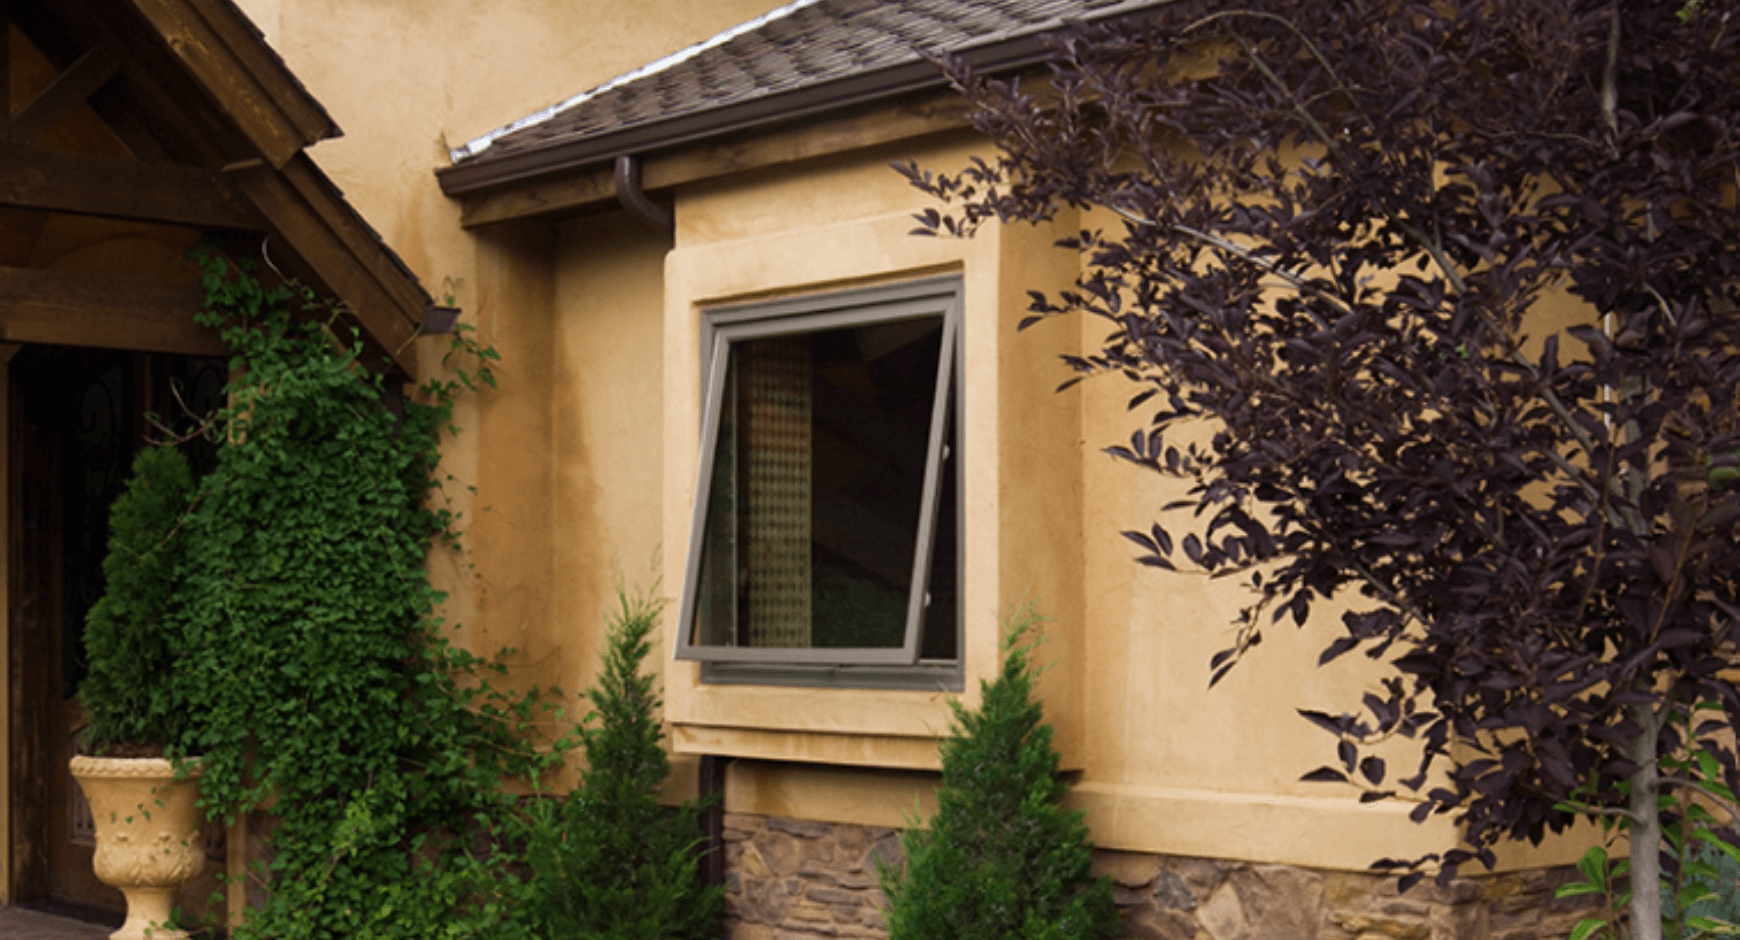 image of an awning window from the outside